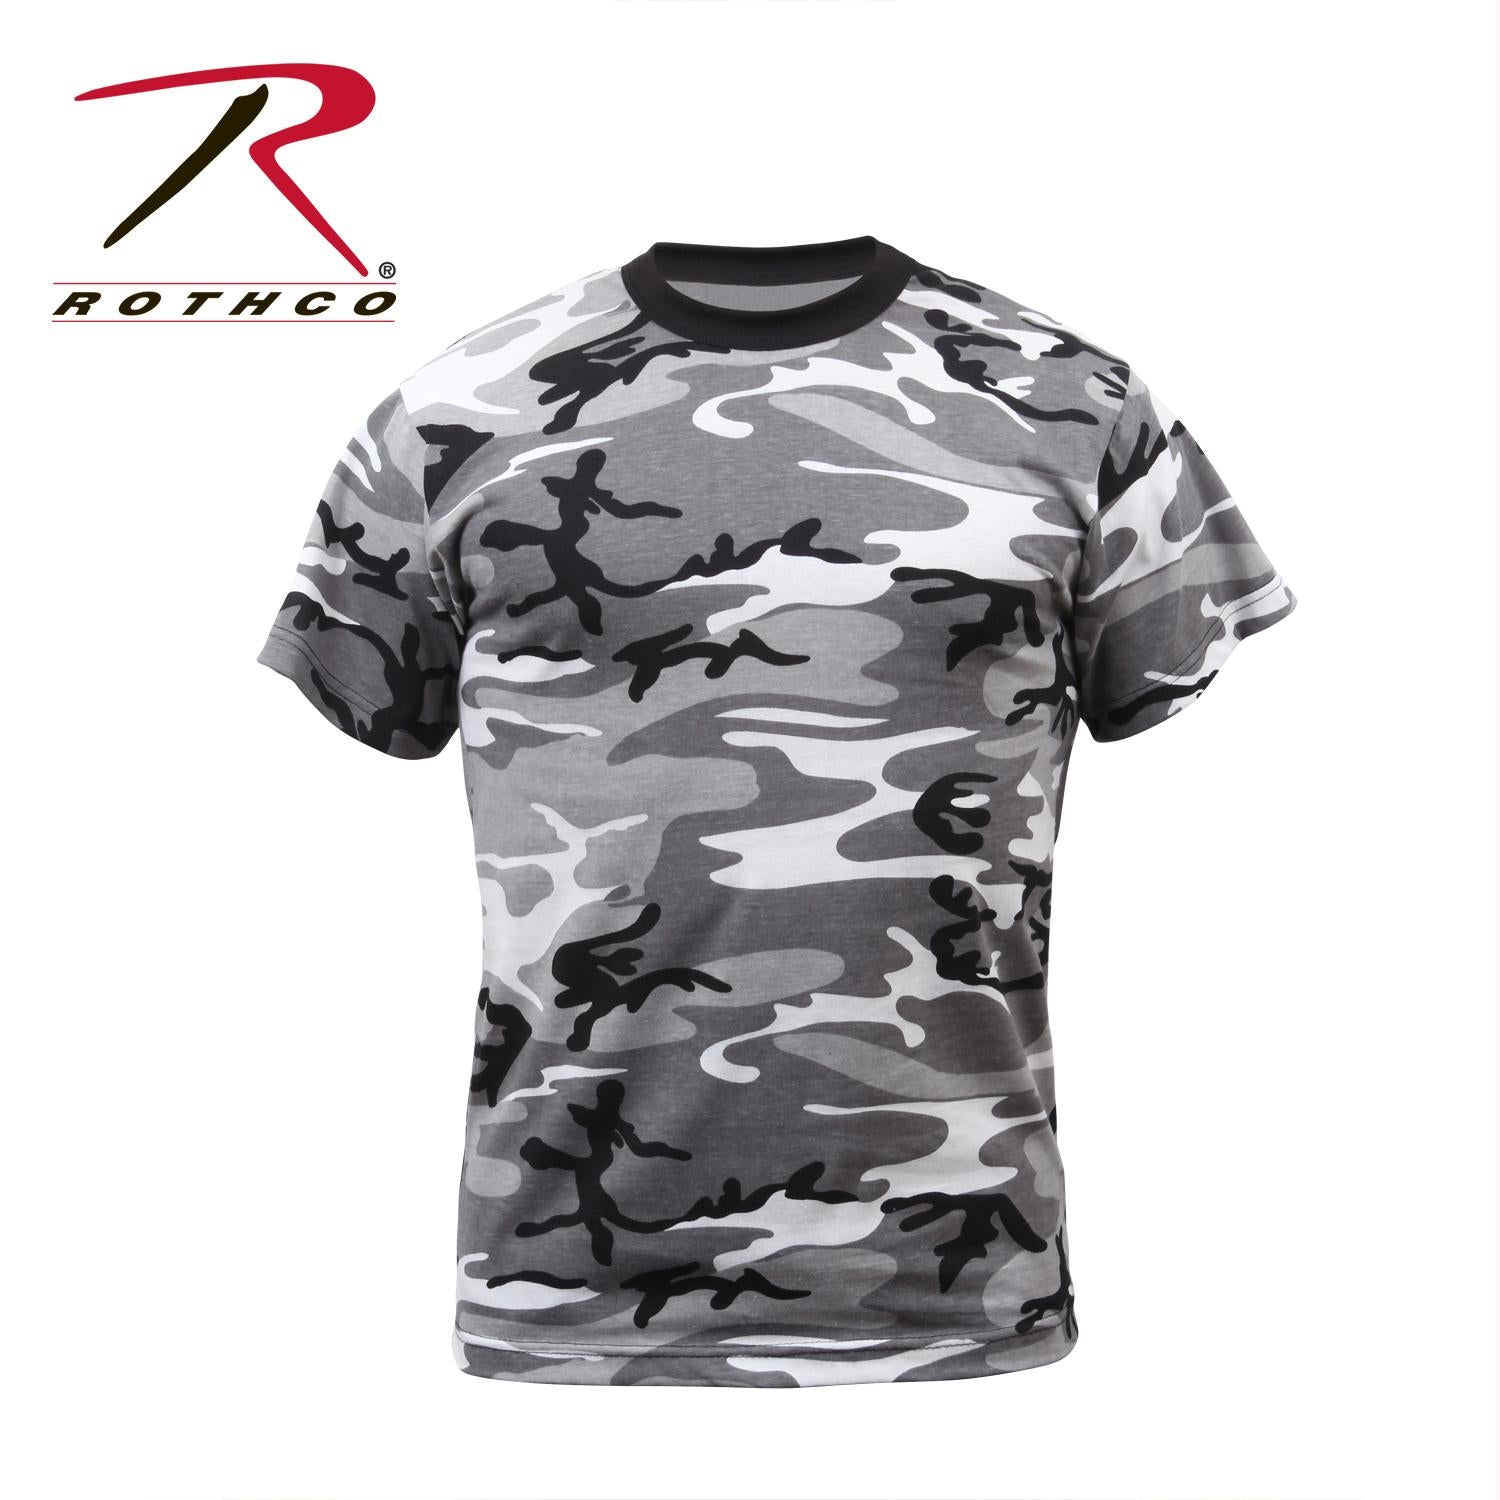 Mens Camouflage T-Shirt Military Camo Crewneck Short Sleeve Tee - City Camo / L